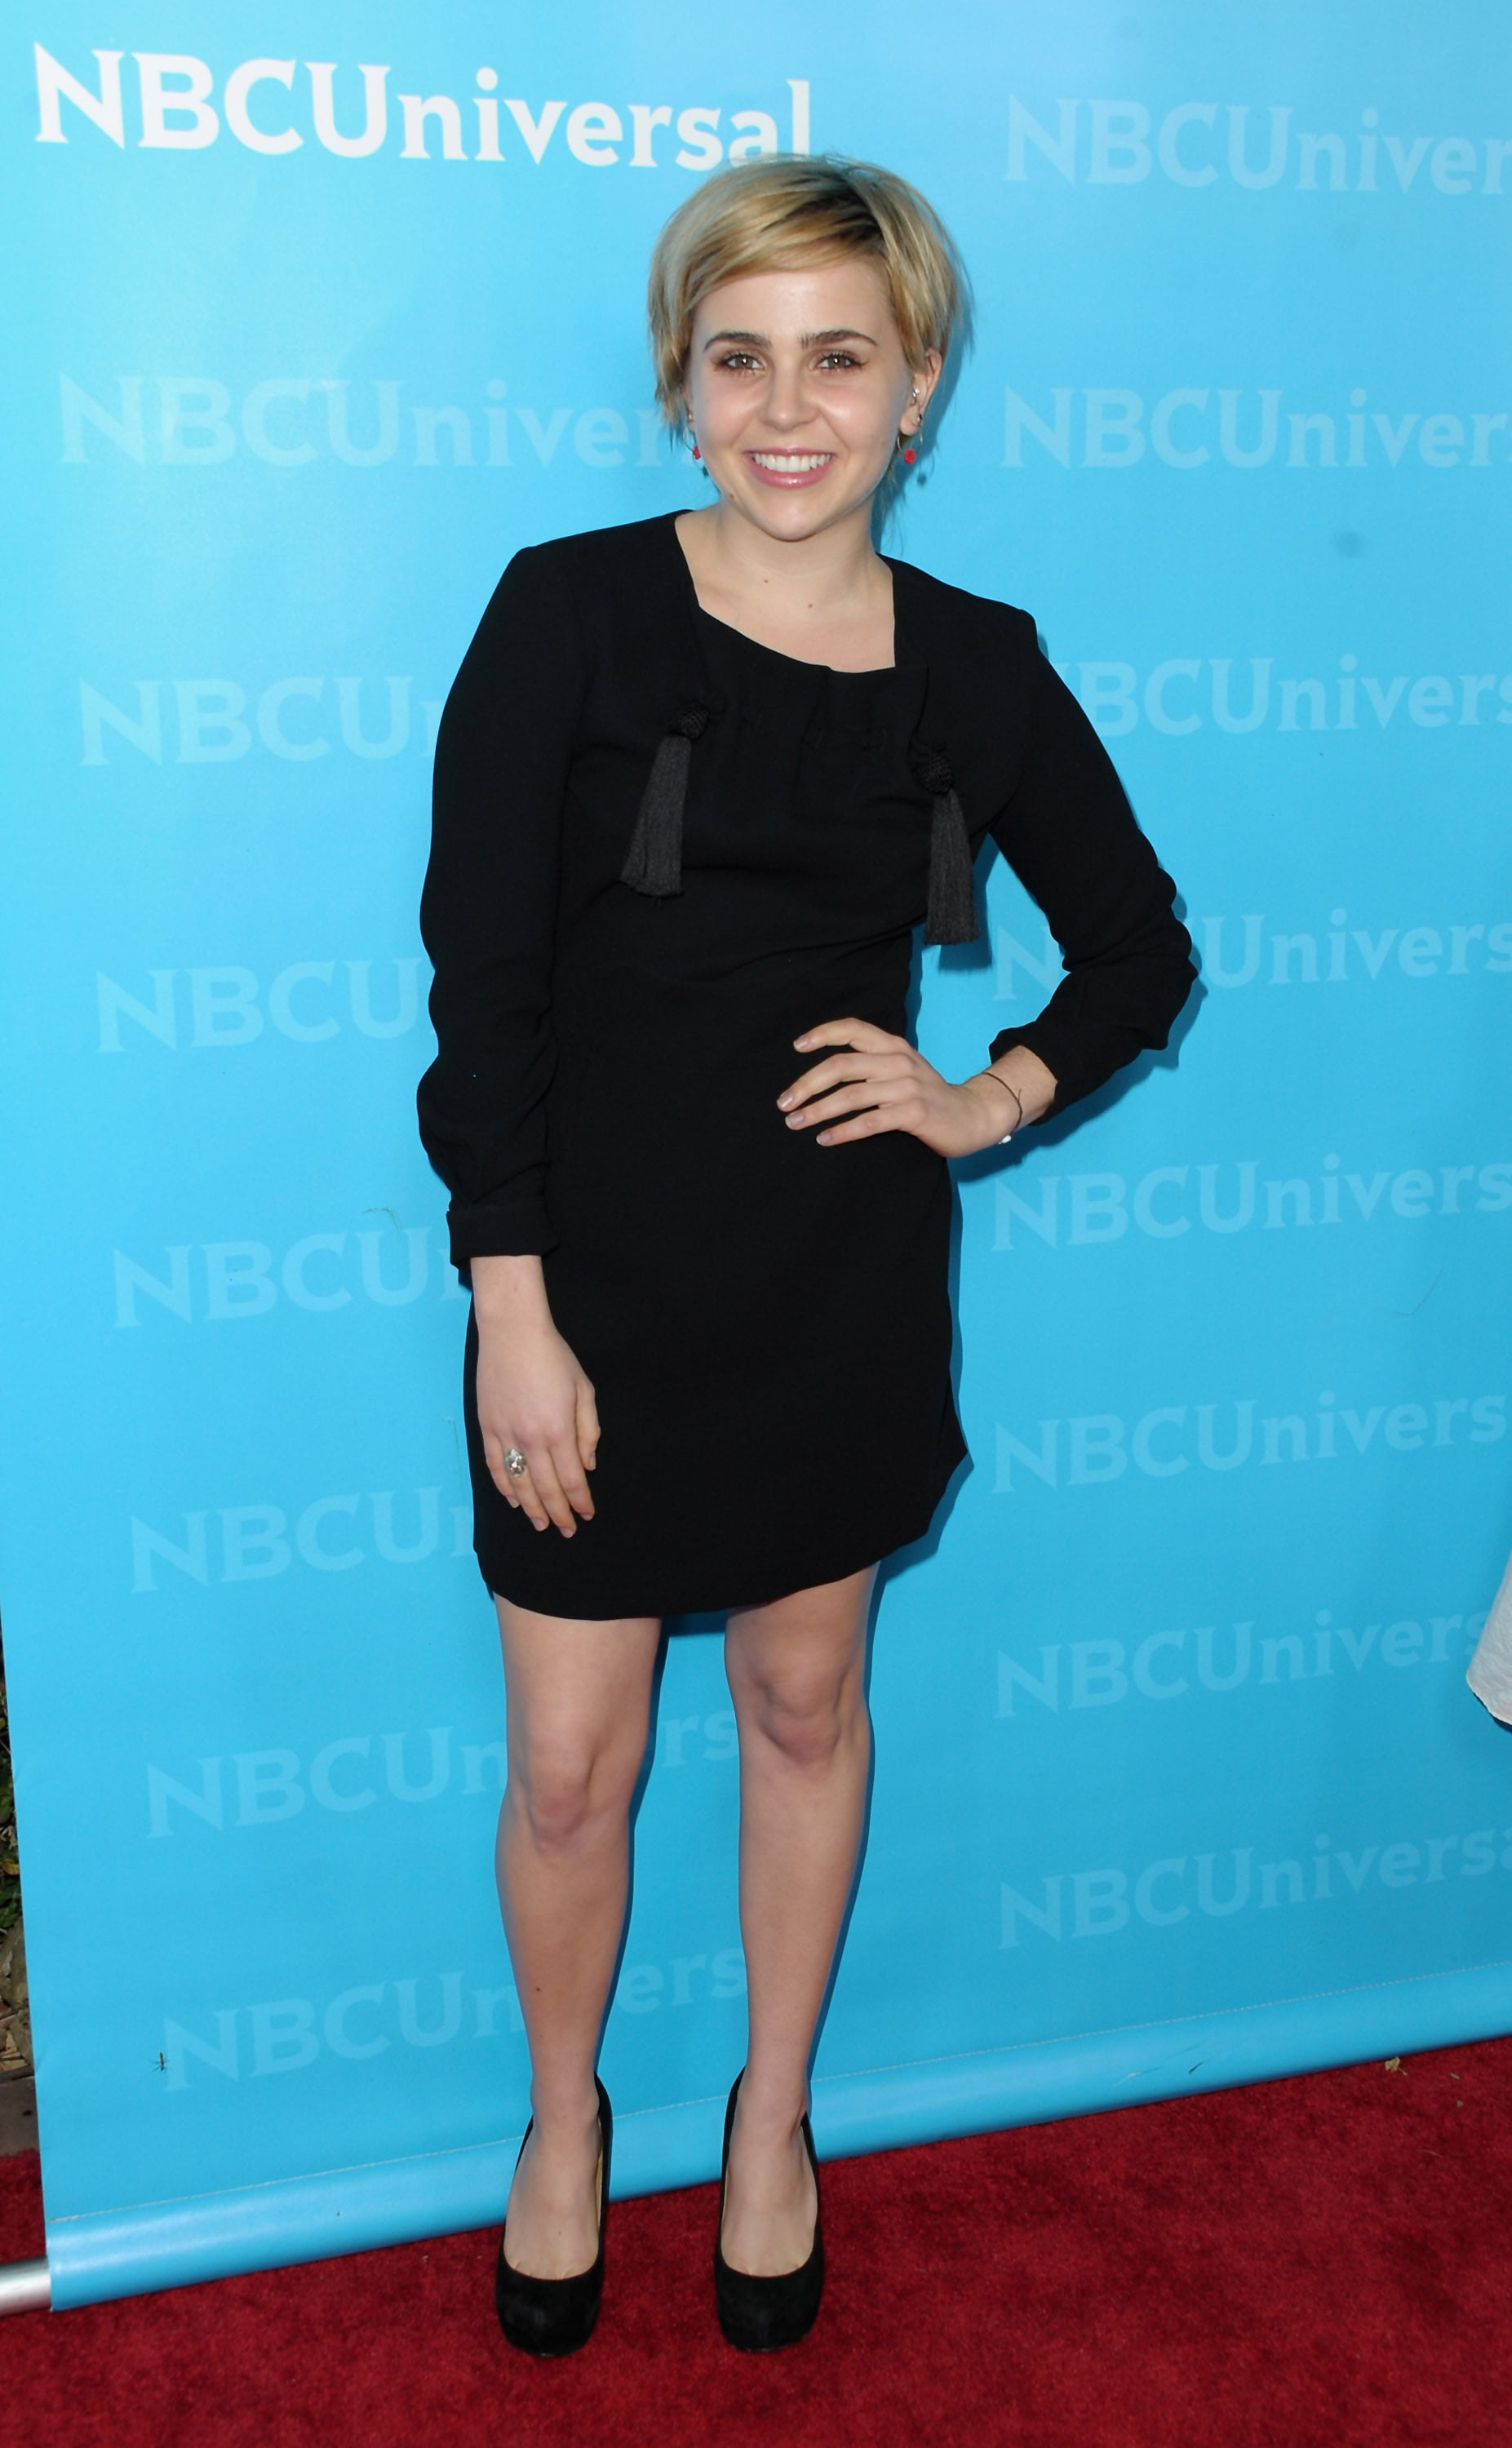 The Lovely Ladies of NBC Gather For a Very Blond TCA Bash